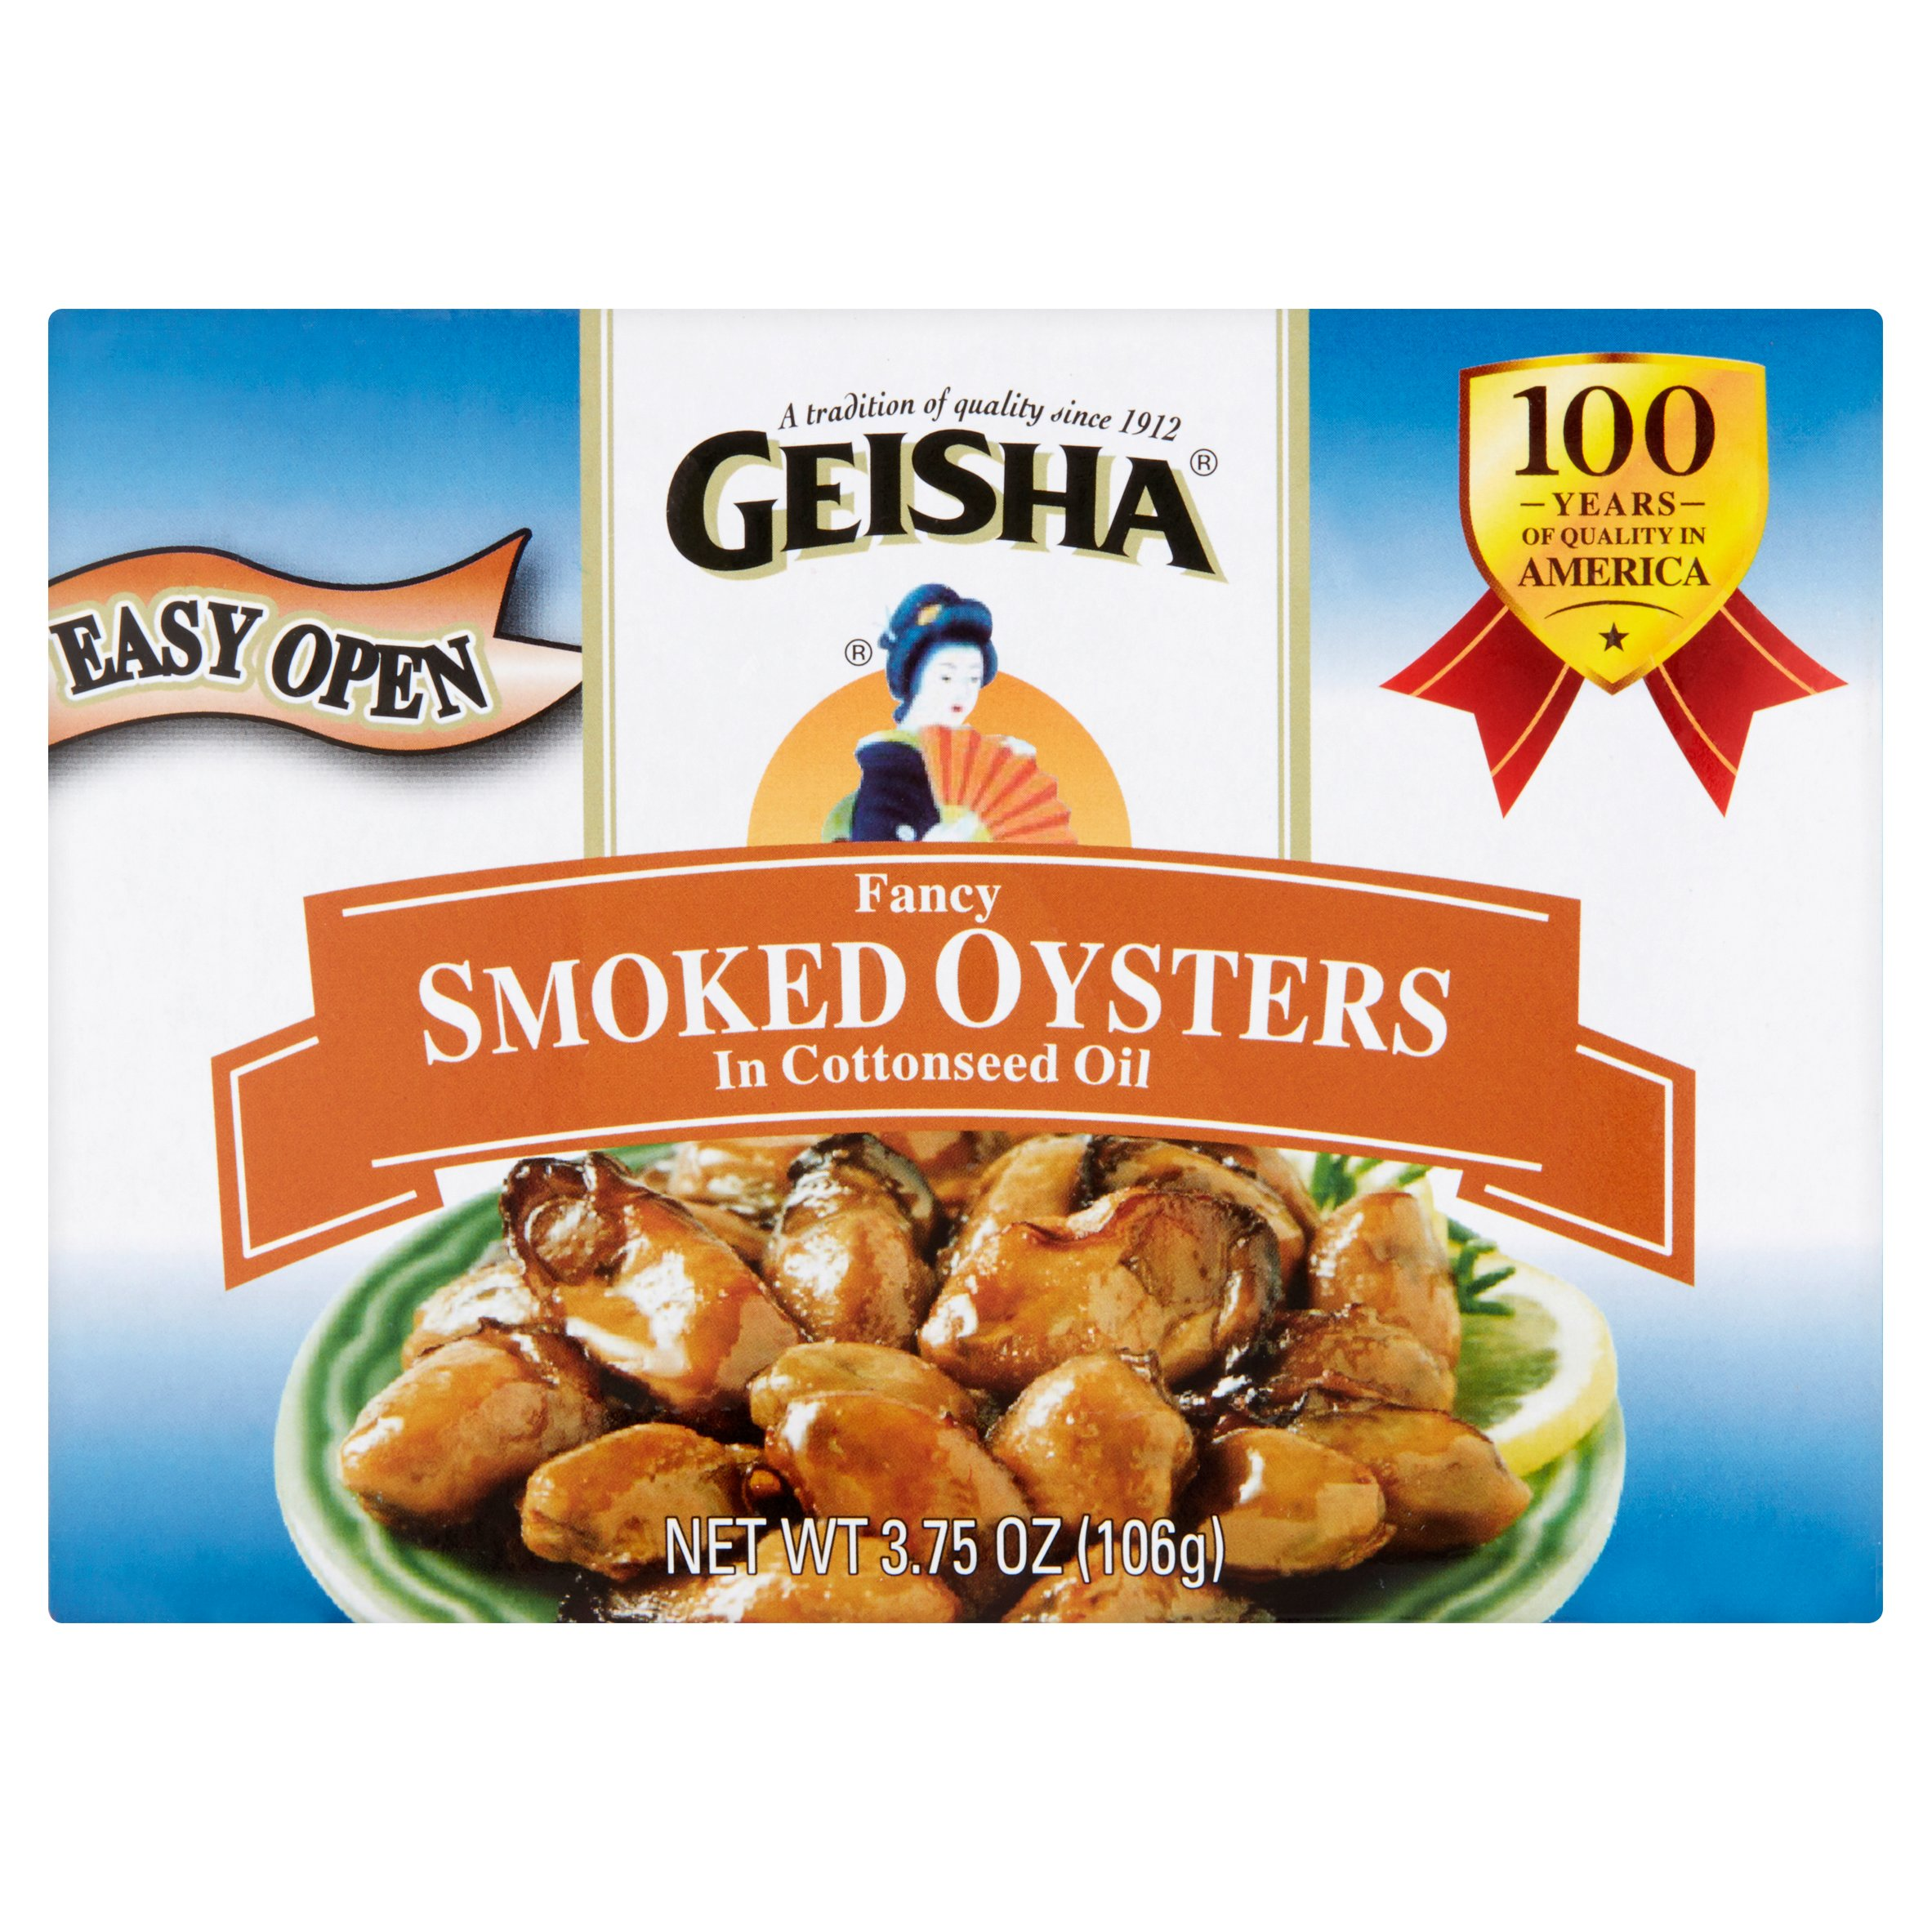 Geisha Fancy Smoked Oysters In Cottonseed Oil, 3.75 oz by Jfe Shoji Trade America, Inc.